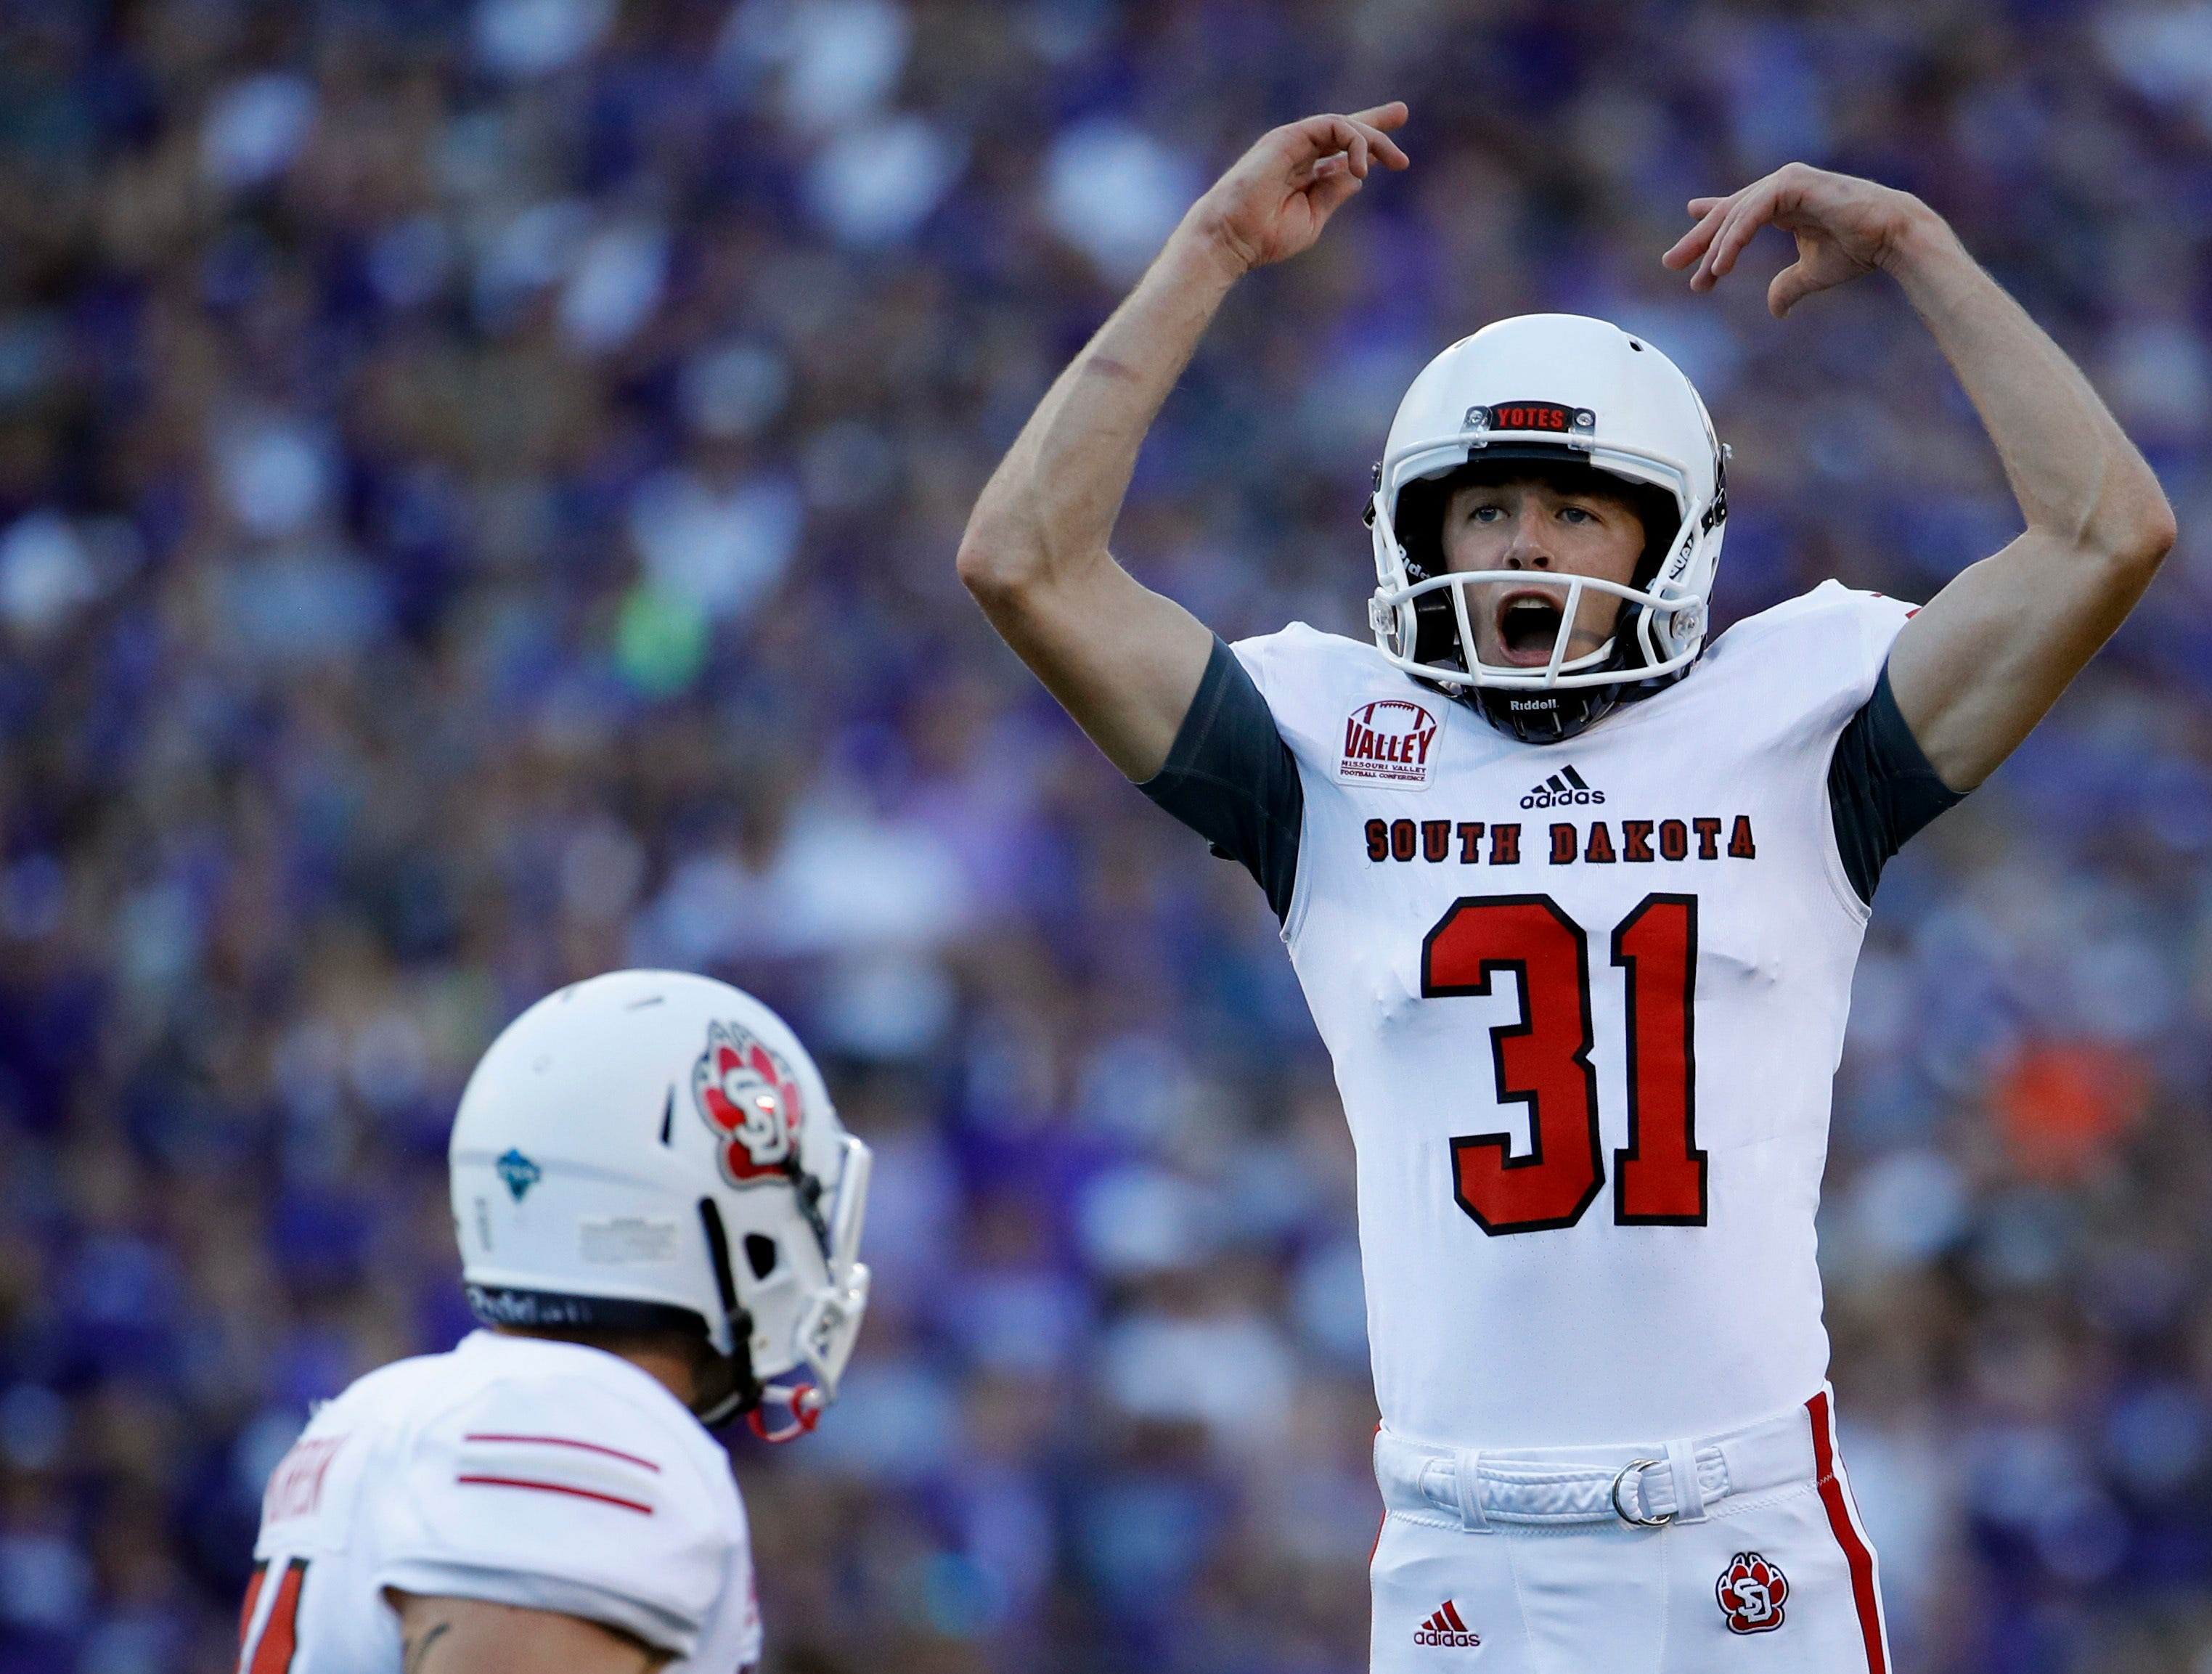 South Dakota place kicker Mason Lorber (31) celebrates after making a field goal during the first half of an NCAA college football game against Kansas State Saturday, Sept. 1, 2018, in Manhattan, Kan. (AP Photo/Charlie Riedel)